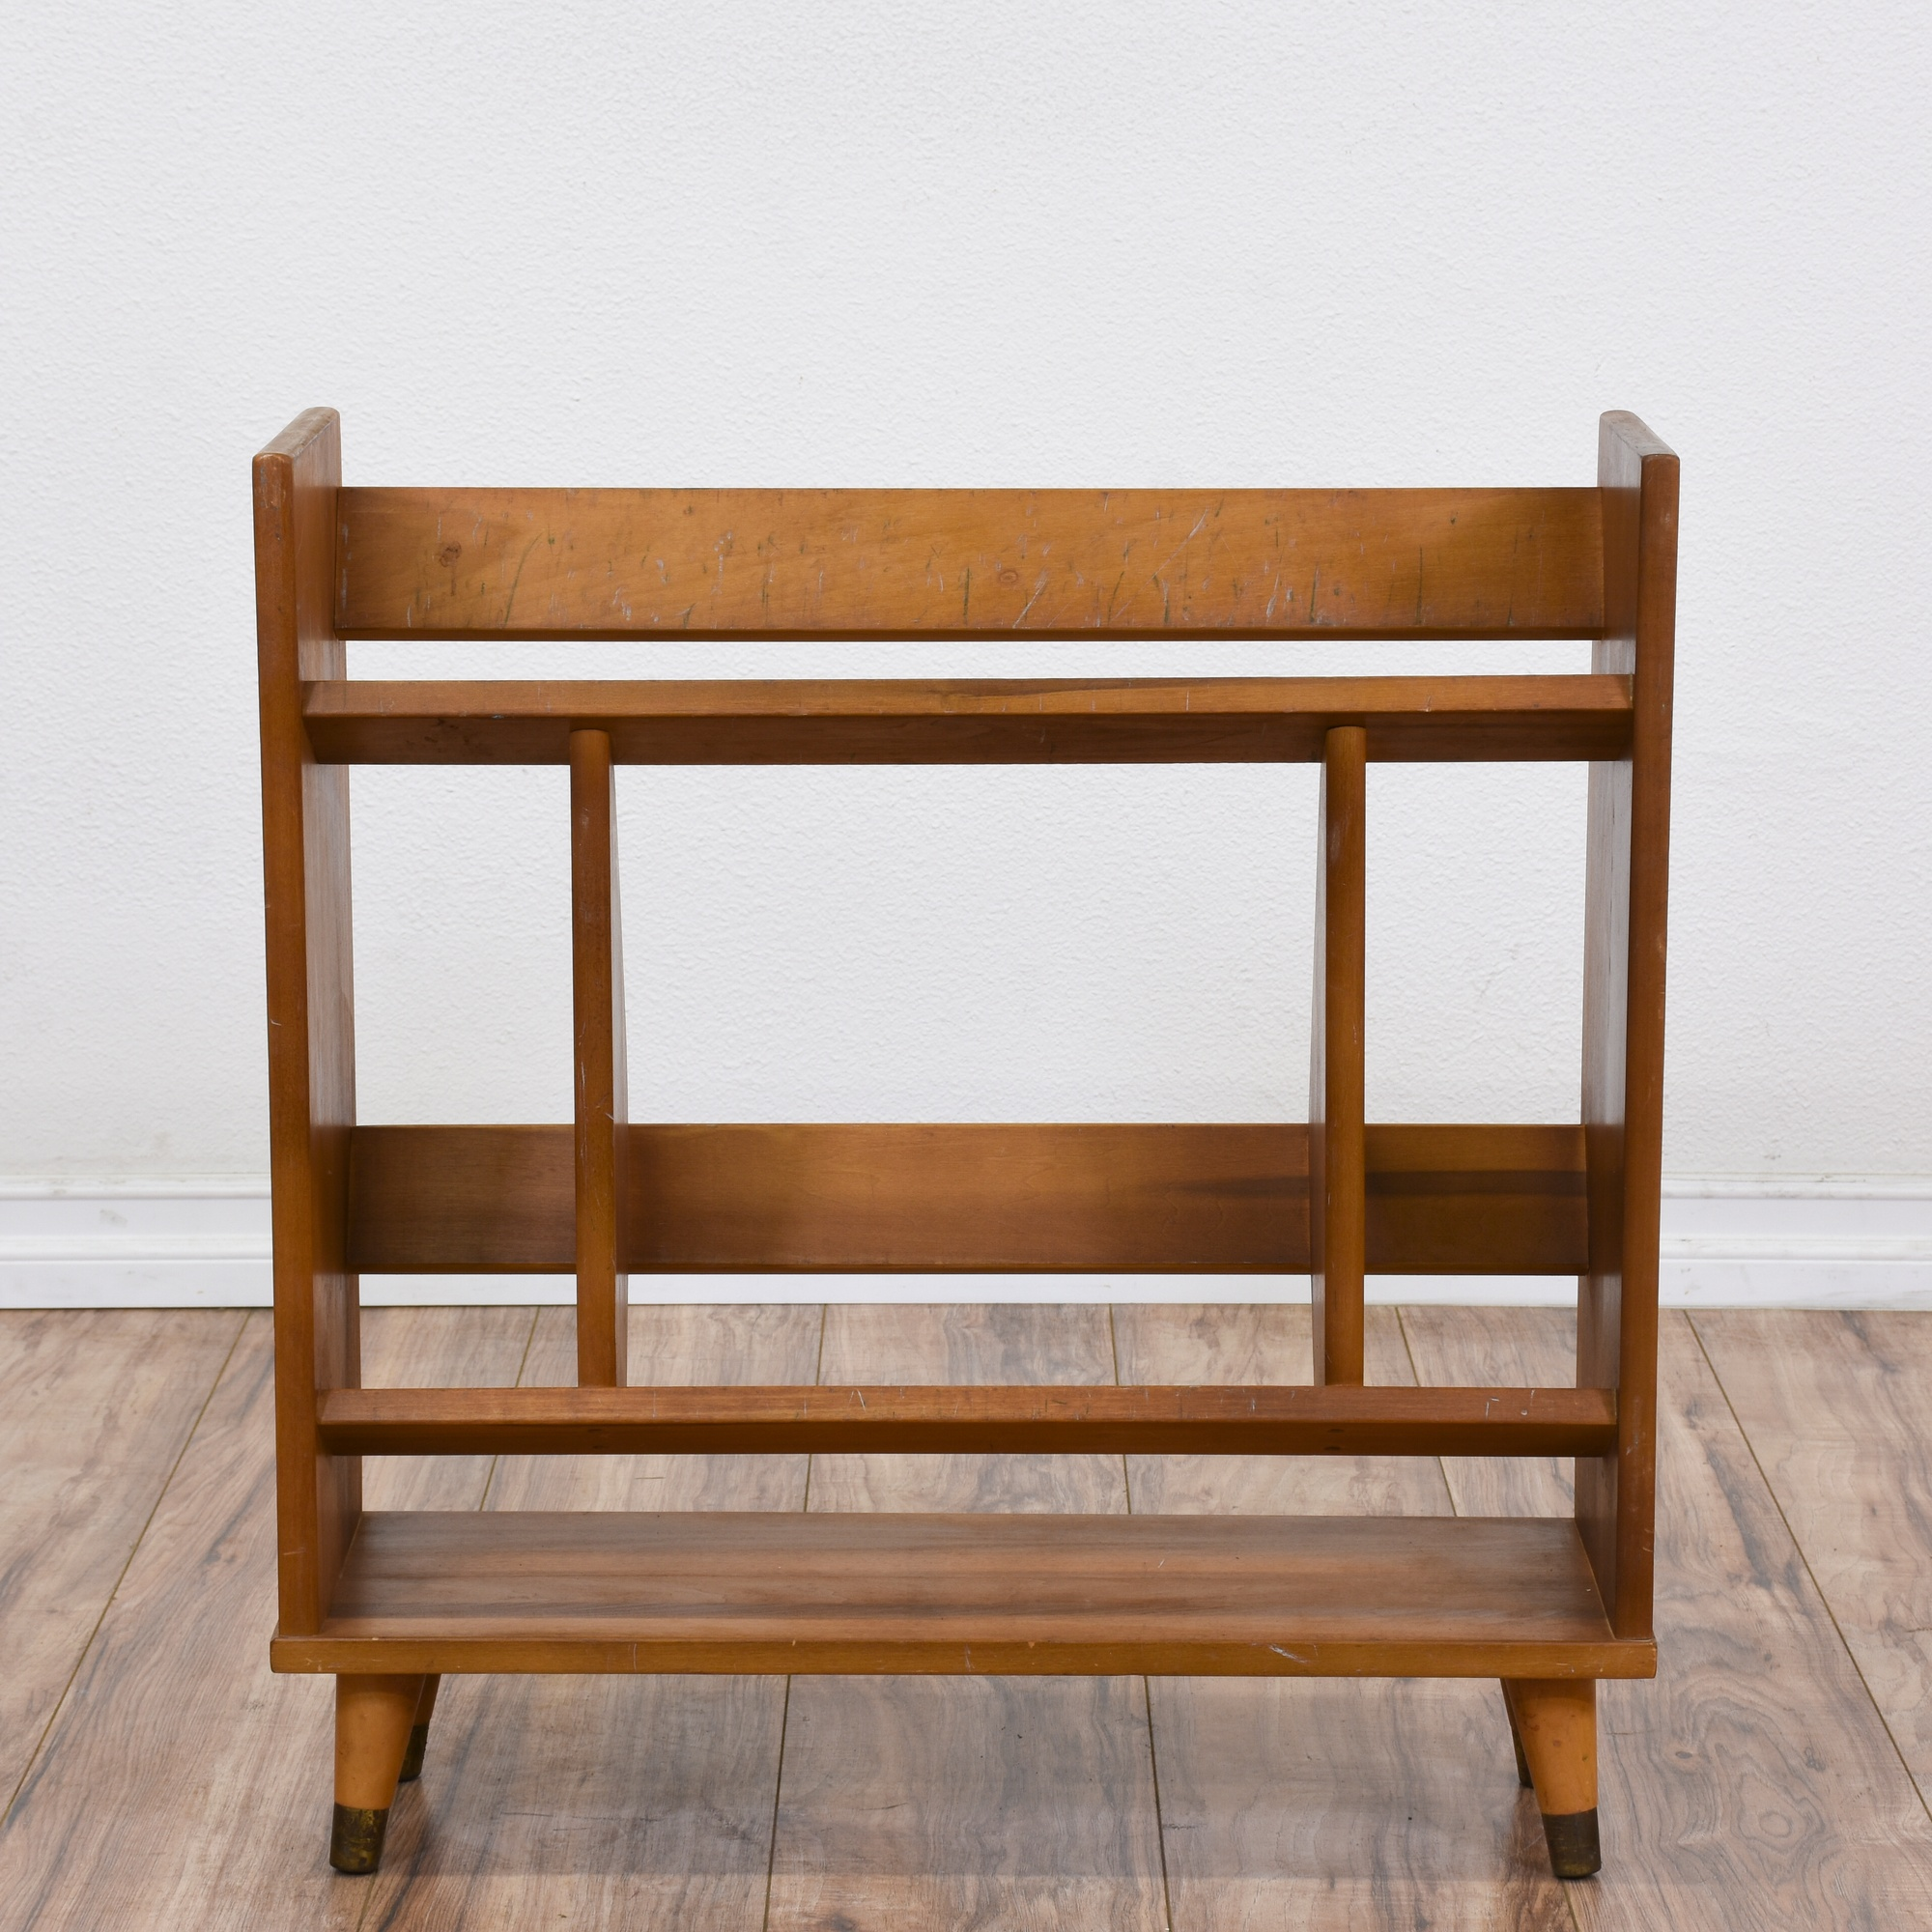 #48250B Small Mid Century Modern Bookcase Loveseat Vintage Furniture San  with 2000x2000 px of Best Very Small Bookcase 20002000 image @ avoidforclosure.info